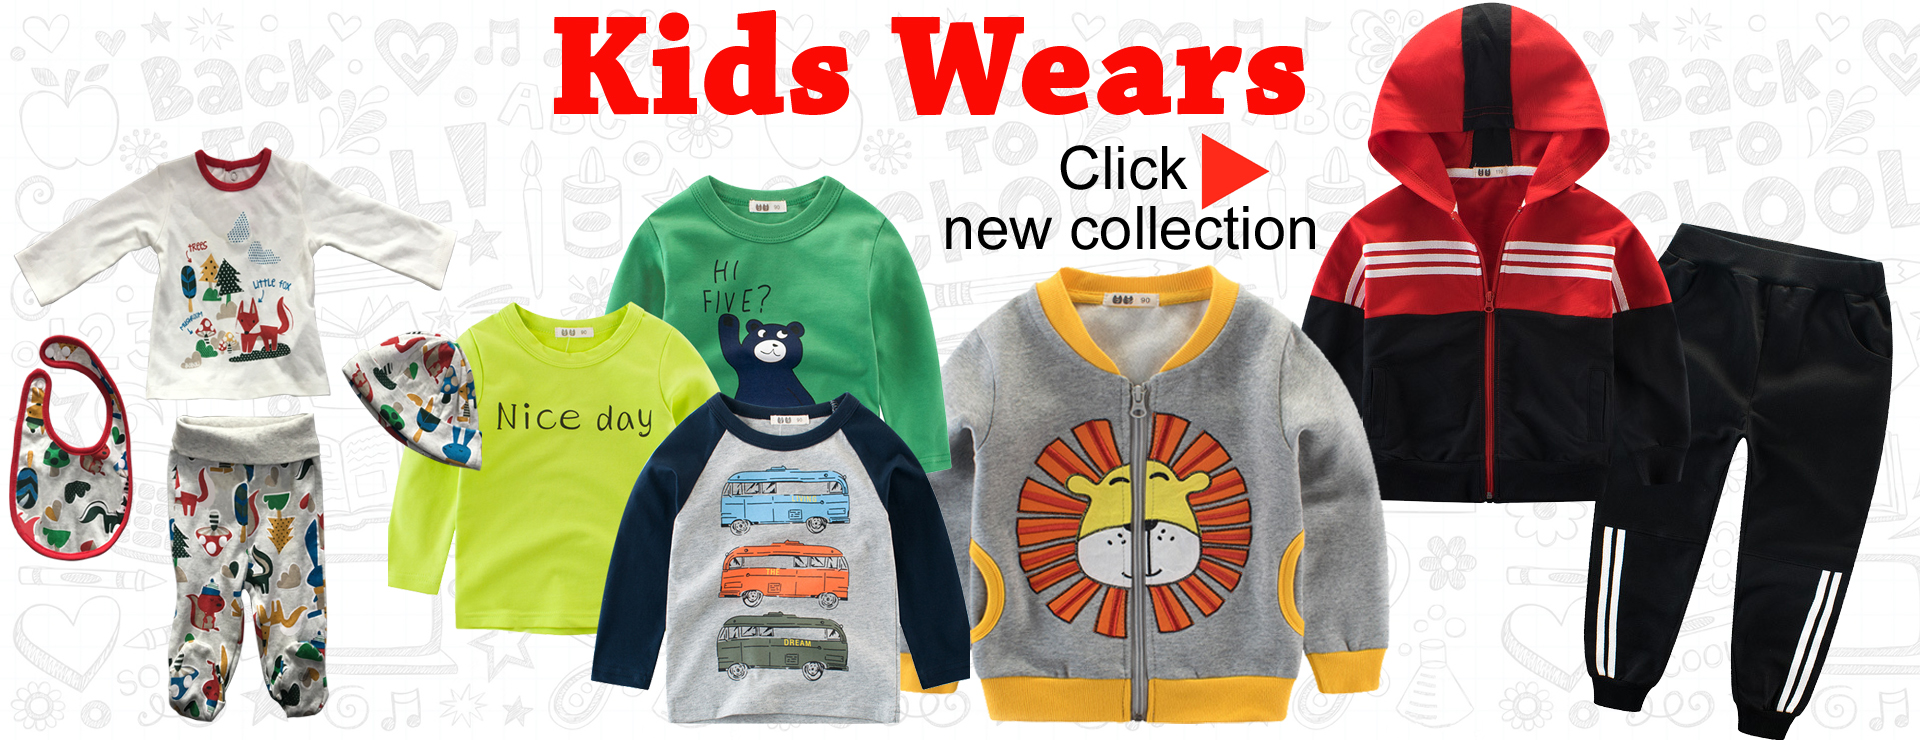 Kids wear kids clothes children garments